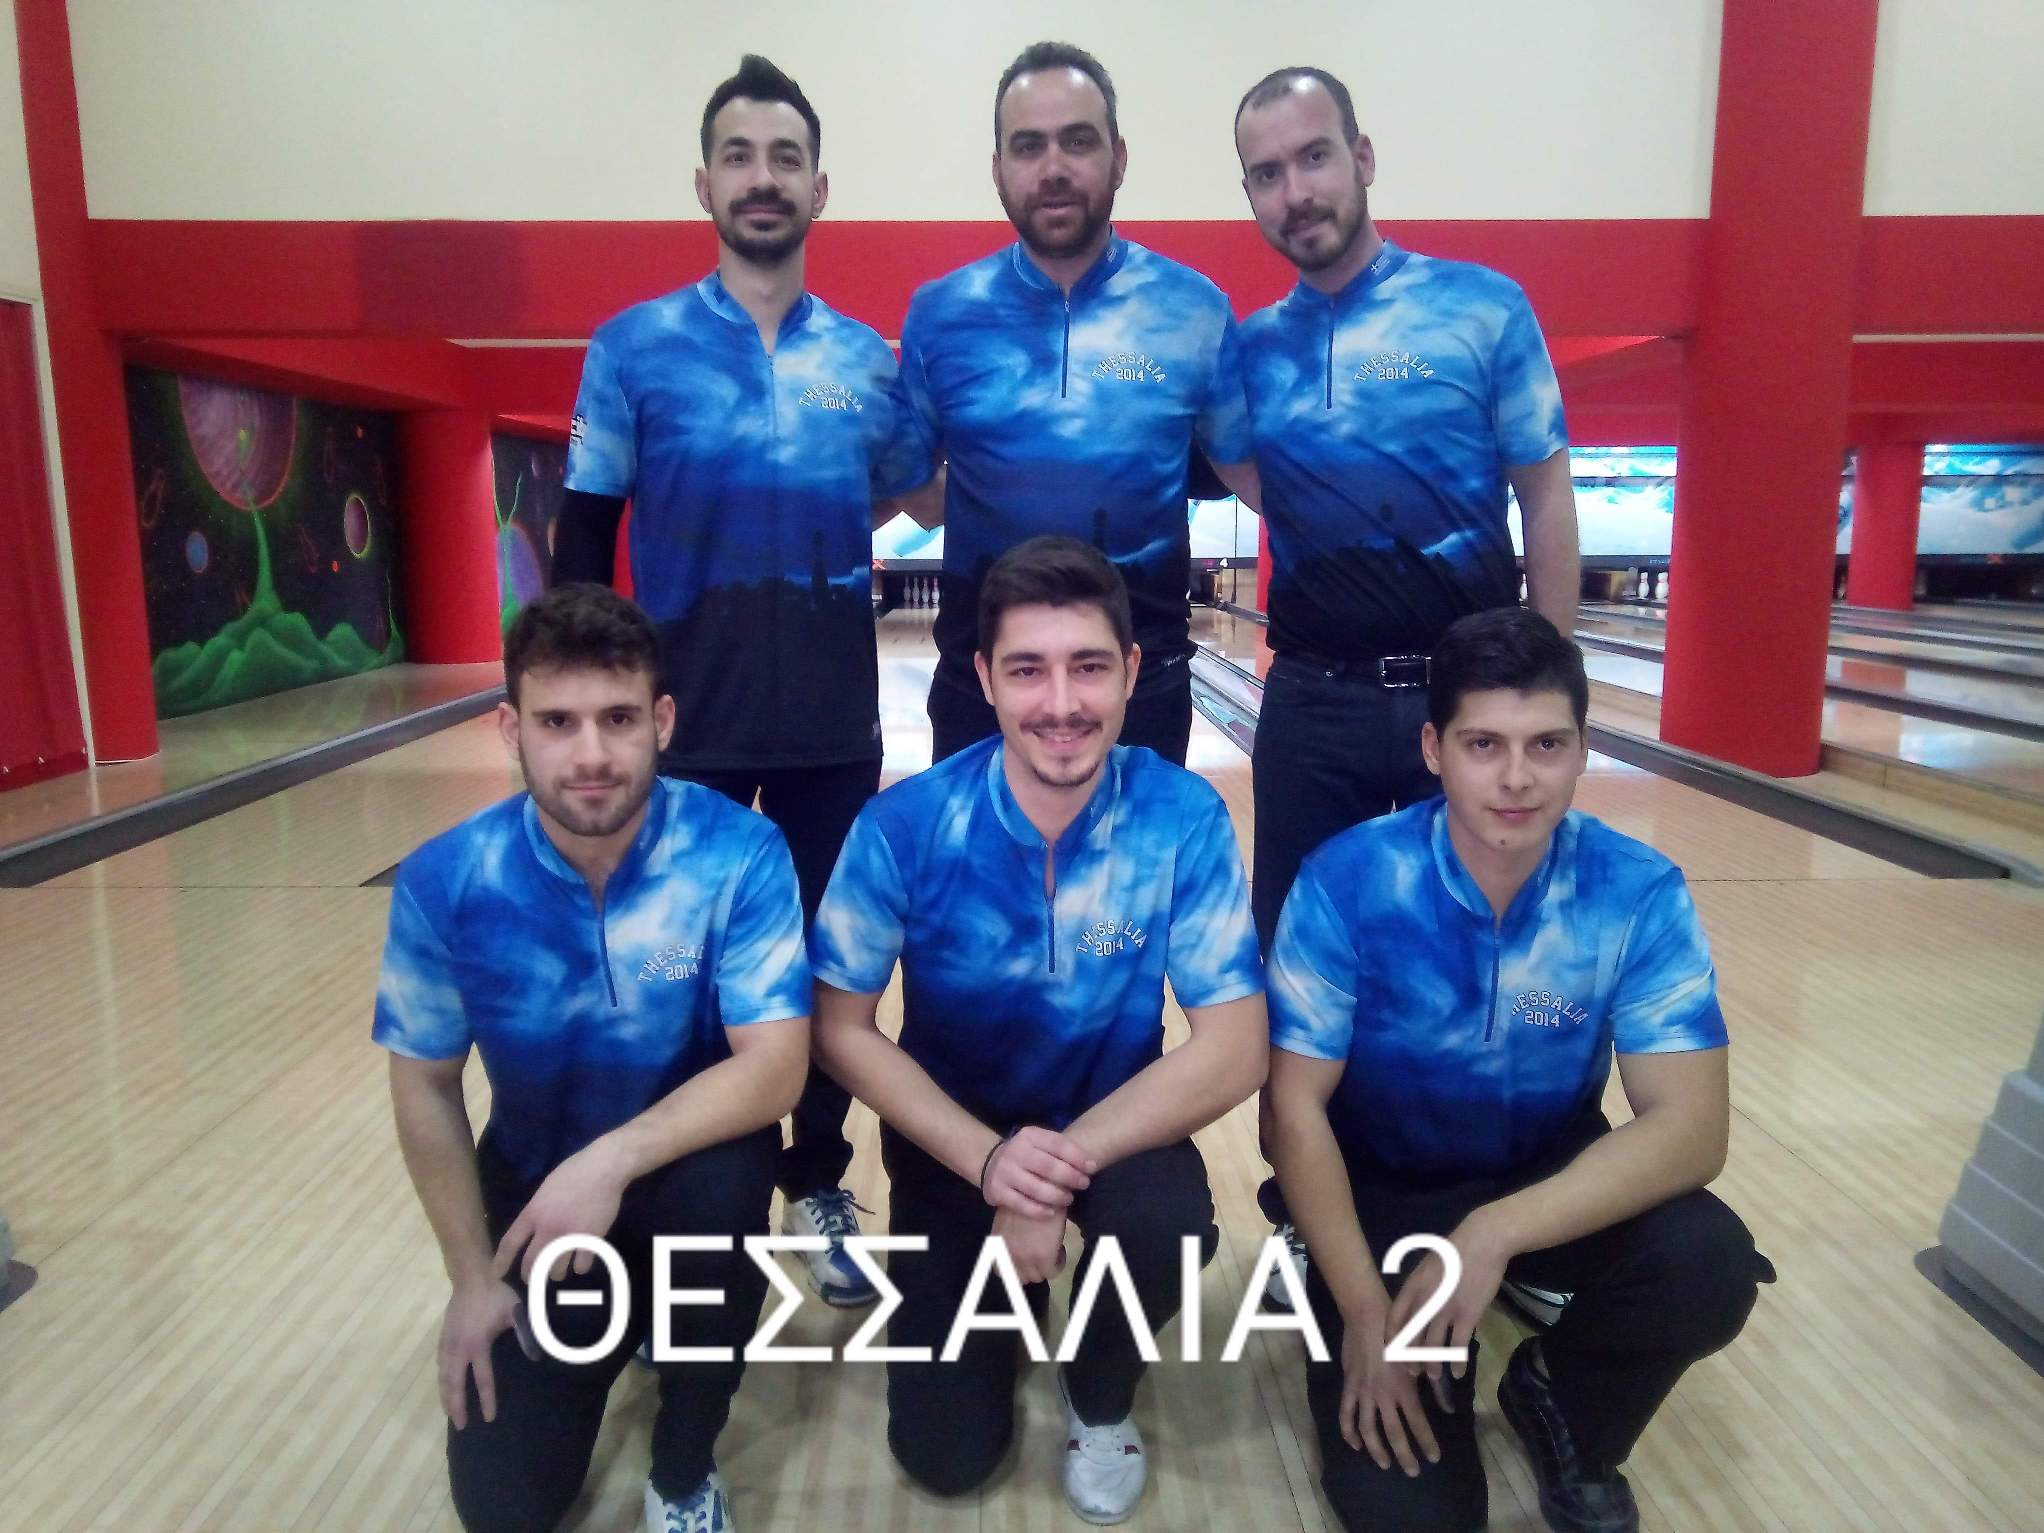 bowling-prokr-omad-2019-2020_1